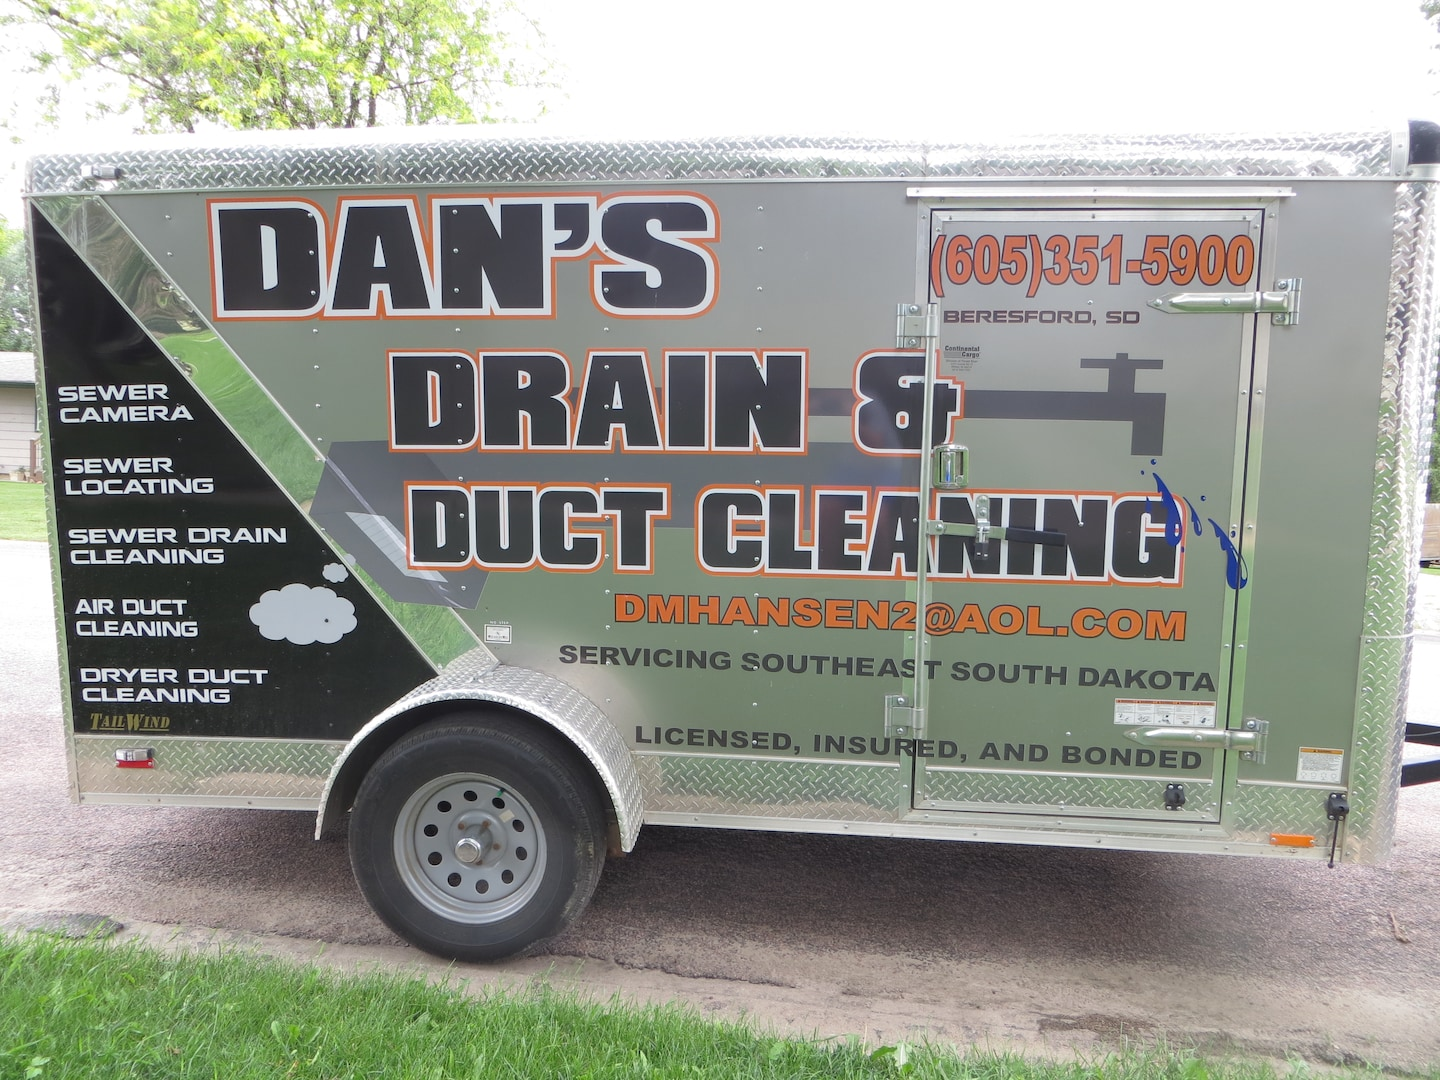 Dan's Drain & Duct Cleaning LLC